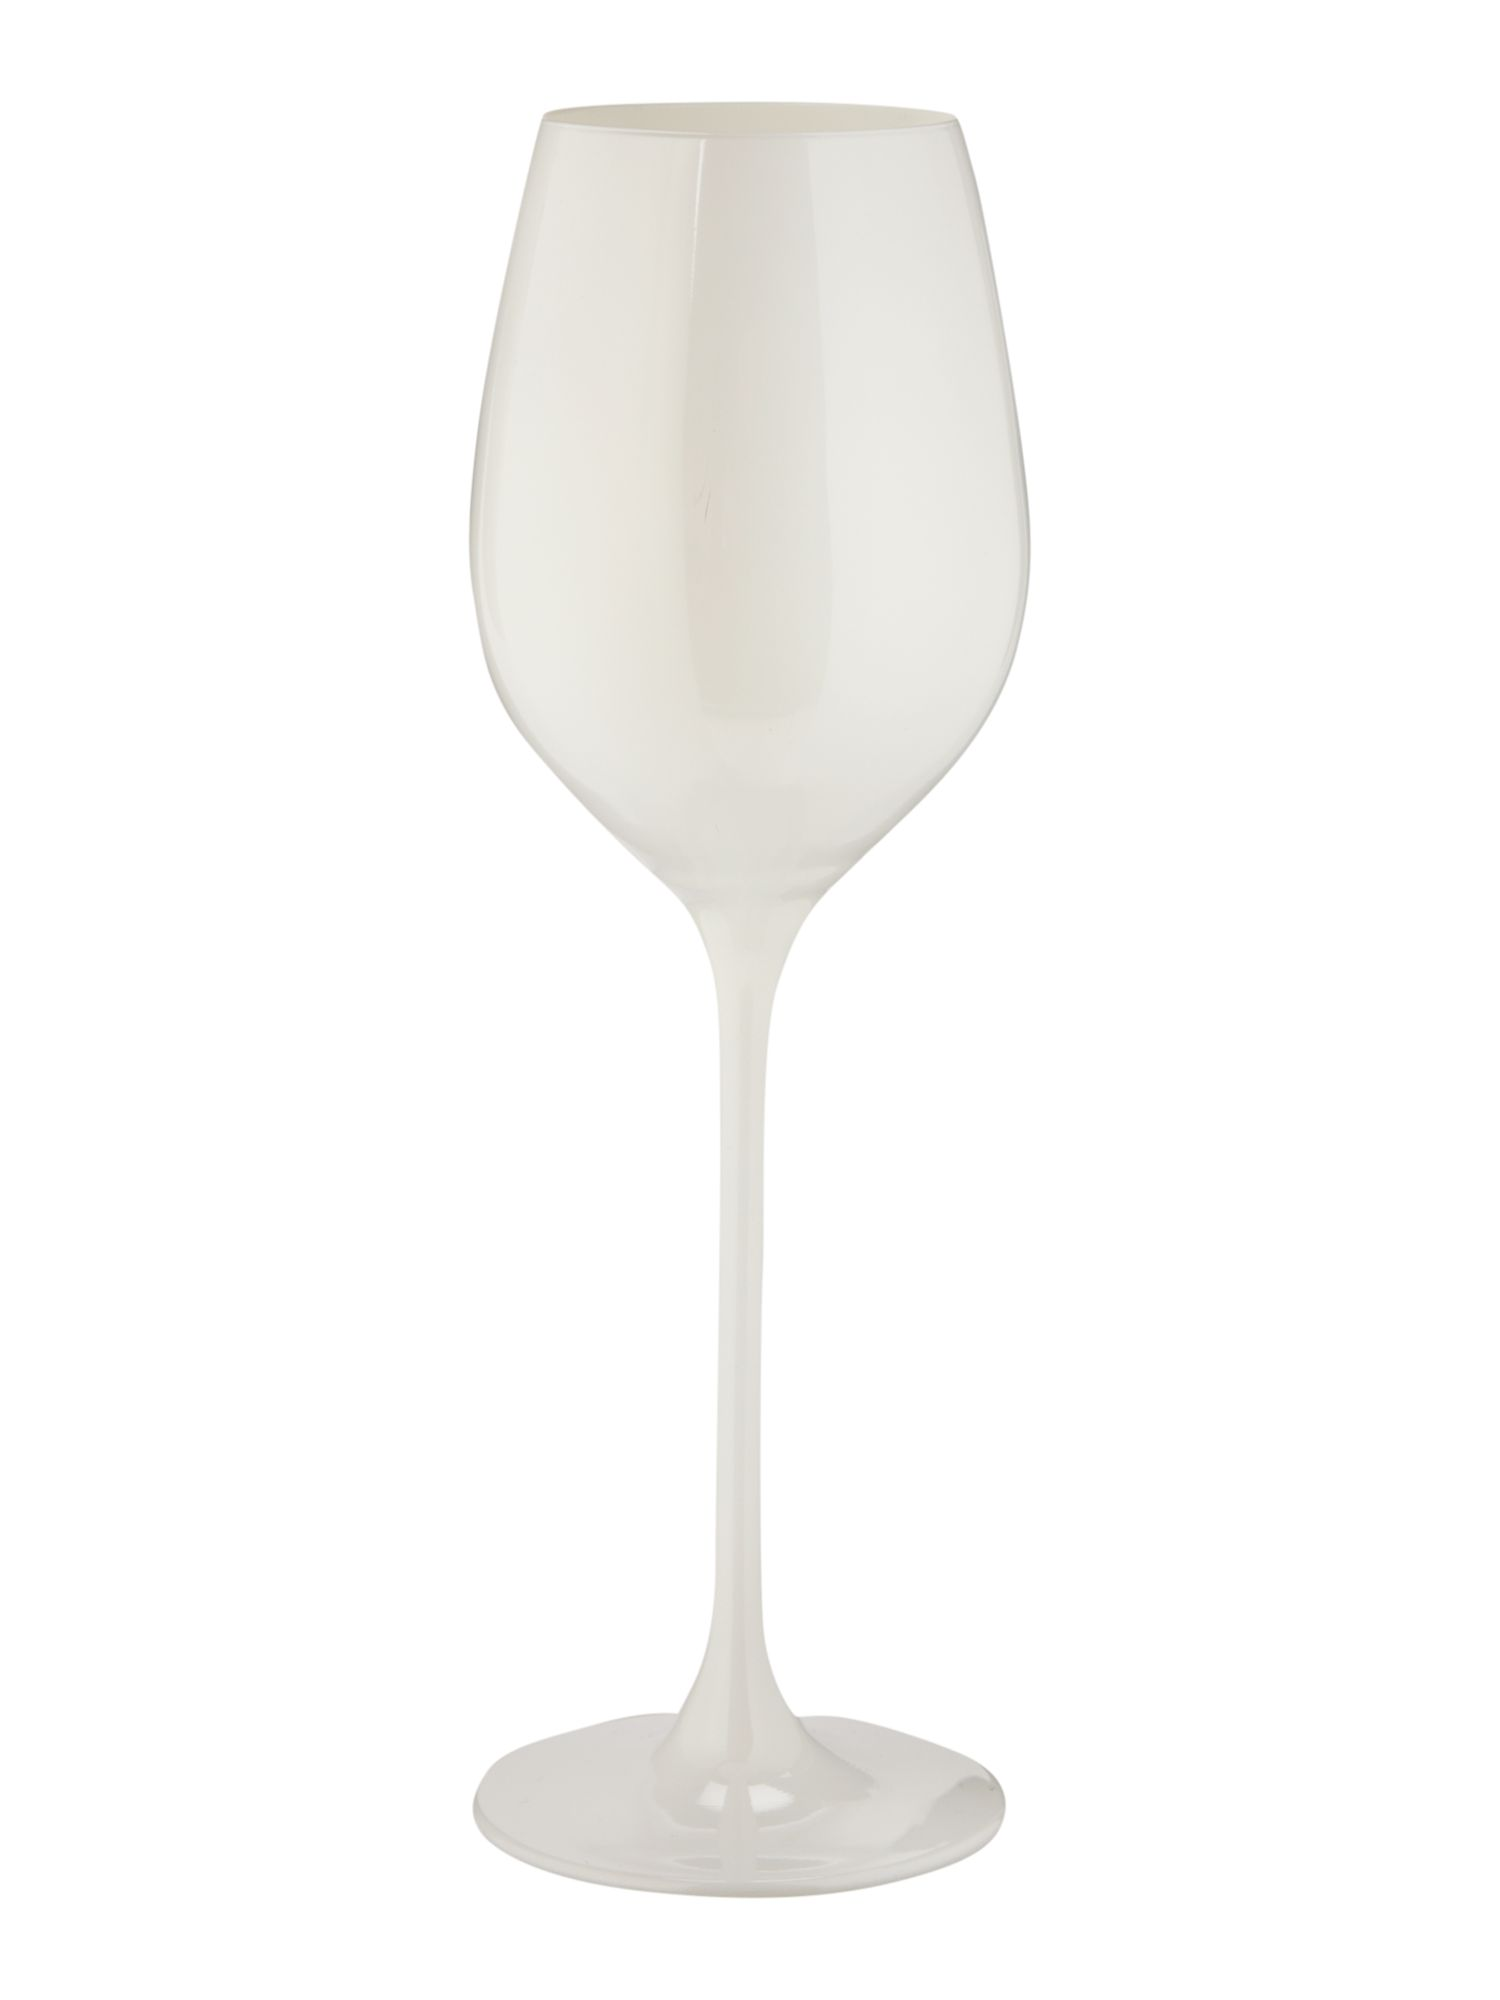 Ghost white wine glass